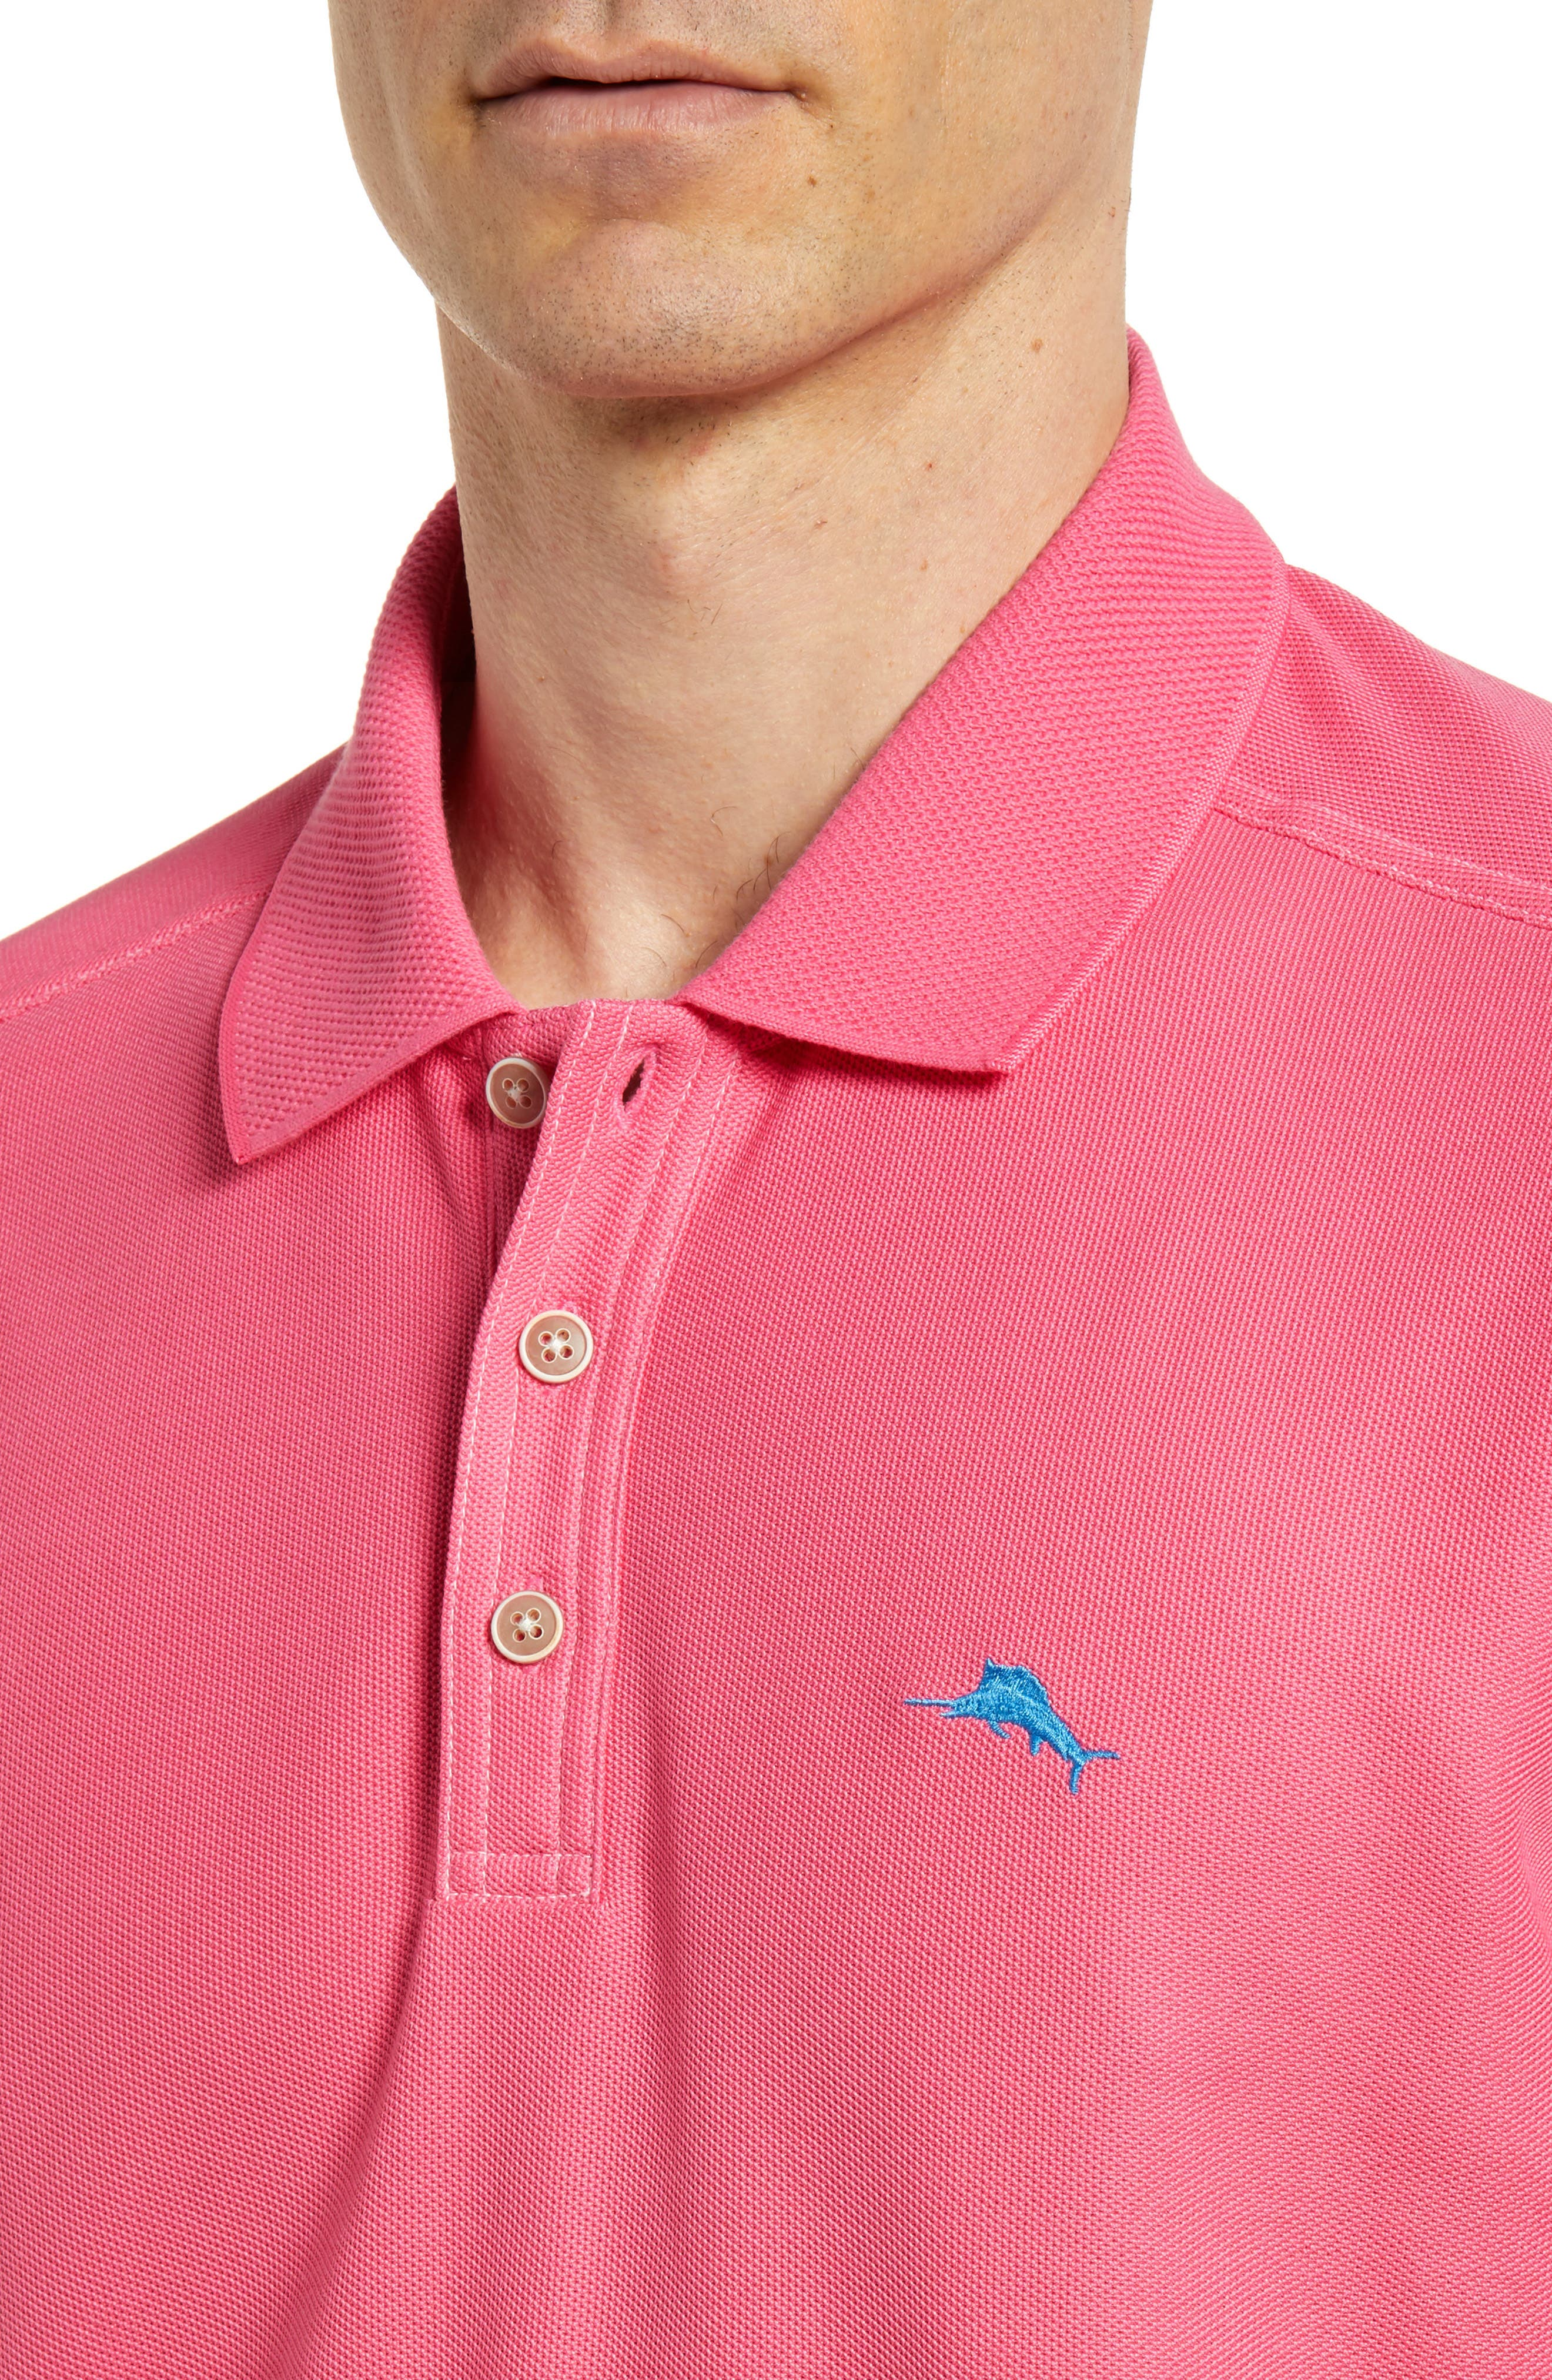 Alternate Image 4  - Tommy Bahama 'The Emfielder' Original Fit Piqué Polo